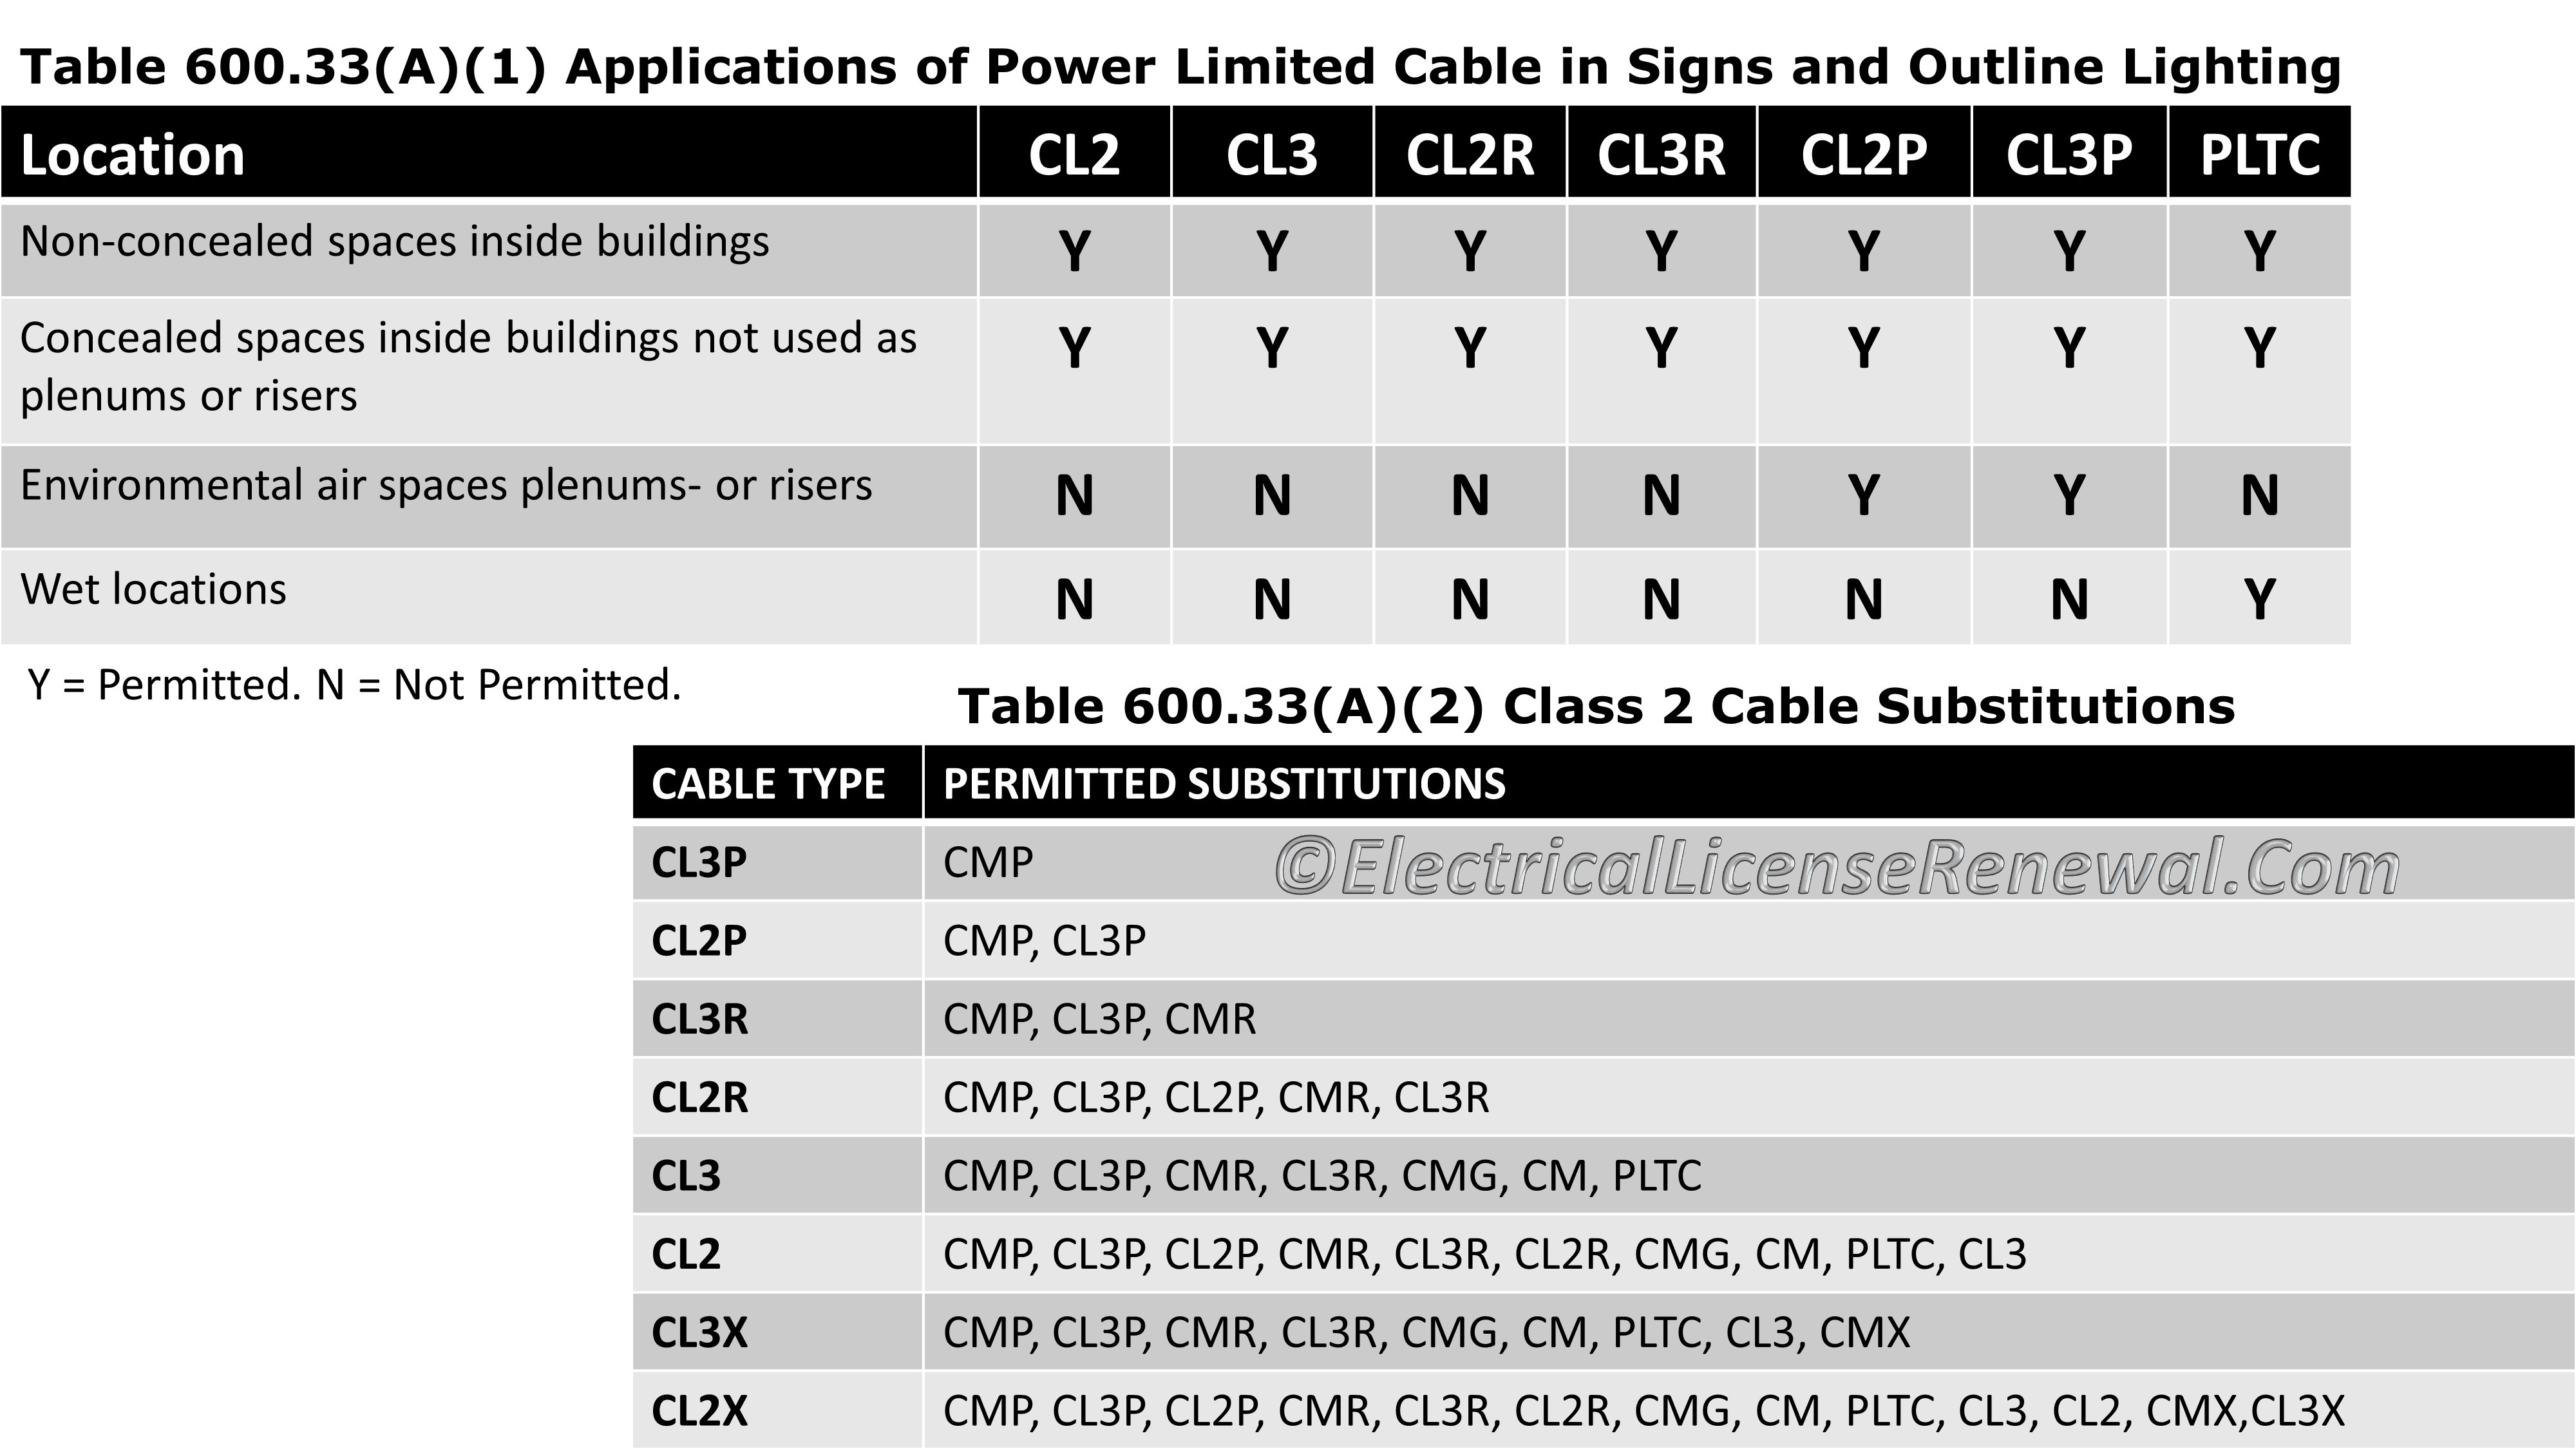 Table 60033a1 2 applications of power limited cable in table 60033a1 2 applications of power limited cable in signs and outline lighting keyboard keysfo Choice Image